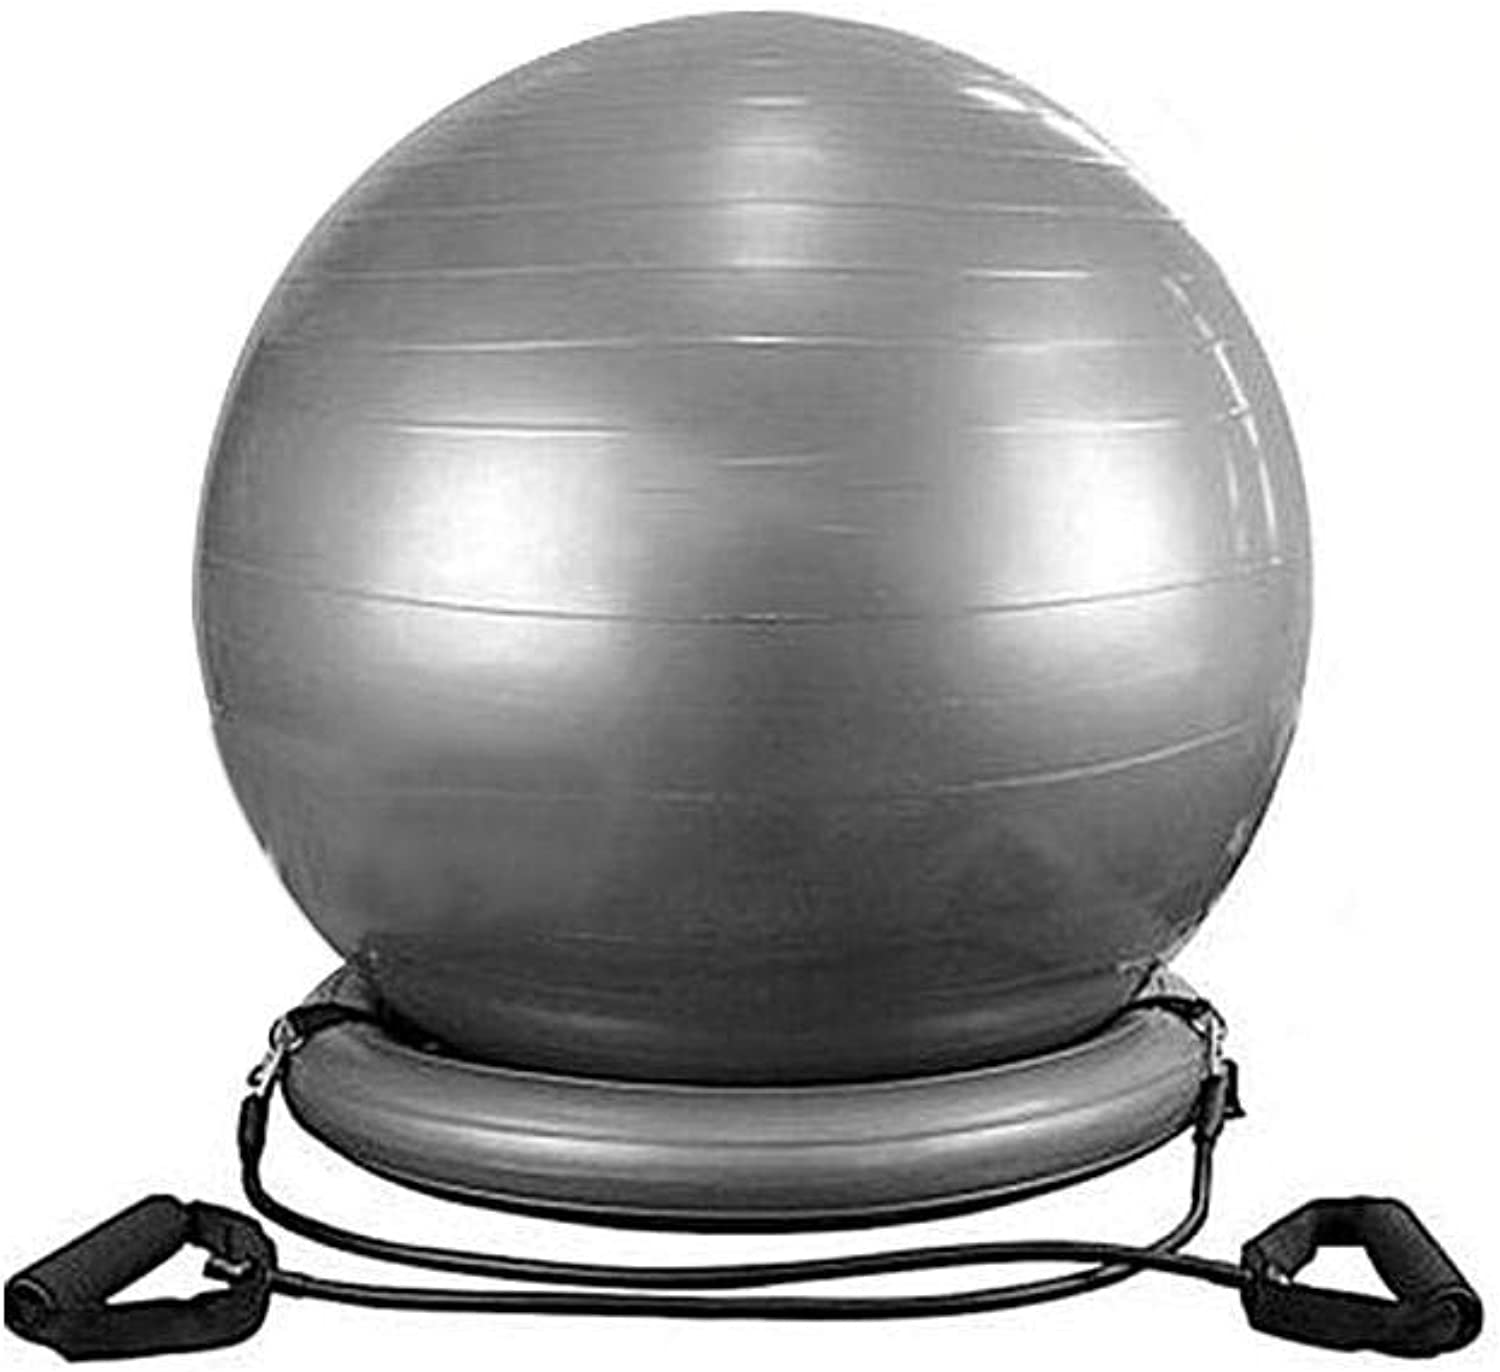 Yoga Exercise Ball, Exercise Ball Chair, ase Ring with Handles 60cm 23.62in Thick Explosion-Proof Yoga Ball Fixed Base, Yoga Ball Base Fitness Yoga Tool for Home Gym & Office (Ring)